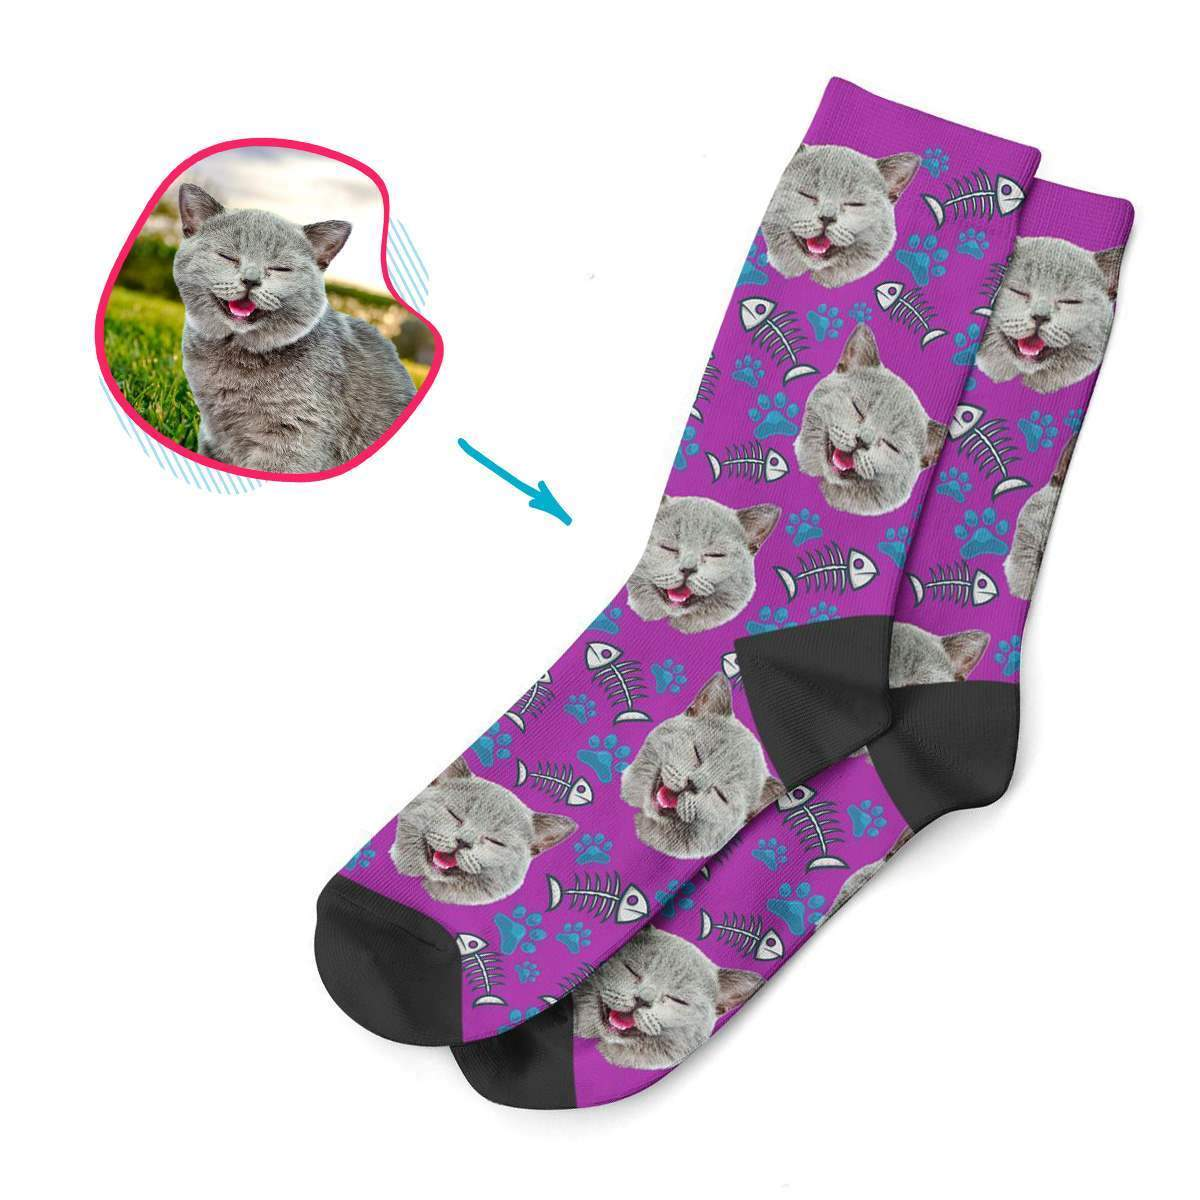 purple Cat socks personalized with photo of face printed on them